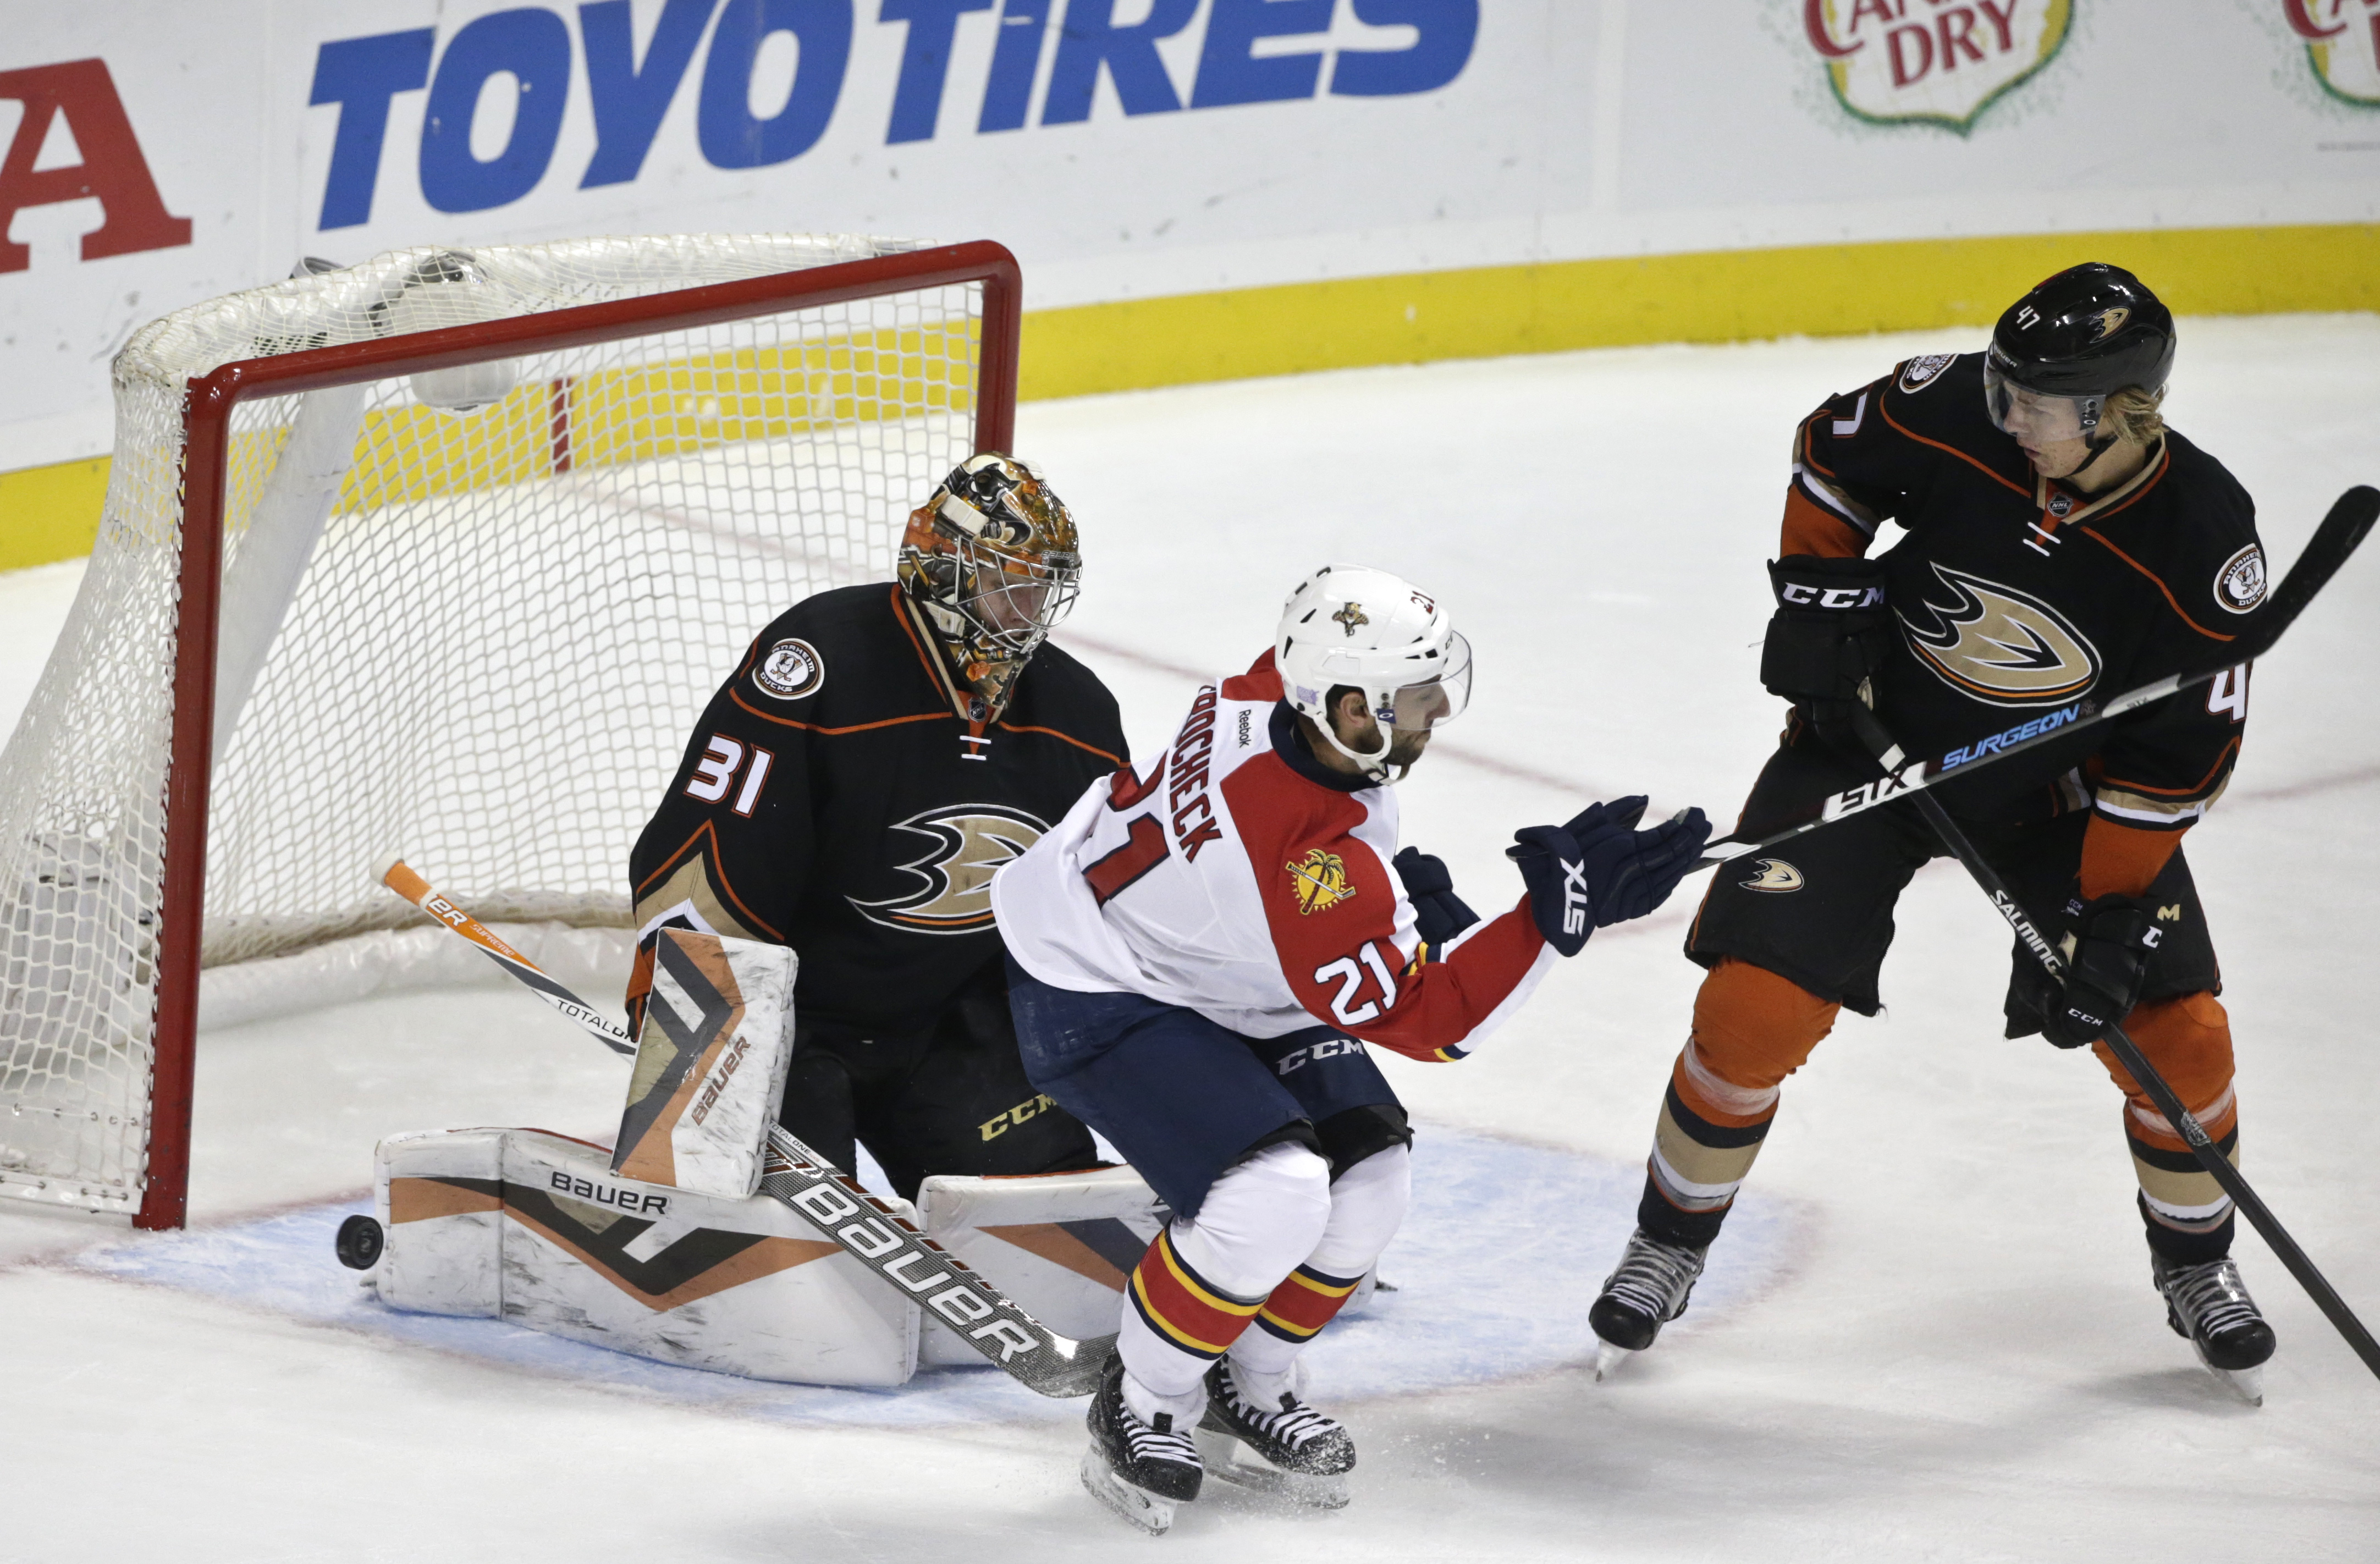 The puck slides past Anaheim Ducks goalie Frederik Andersen but misses the net while Anaheim Ducks defenseman Hampus Lindholm battles Florida Panthers center Vincent Trocheck in front of the net during the first period of an NHL hockey game  Wednesday, No